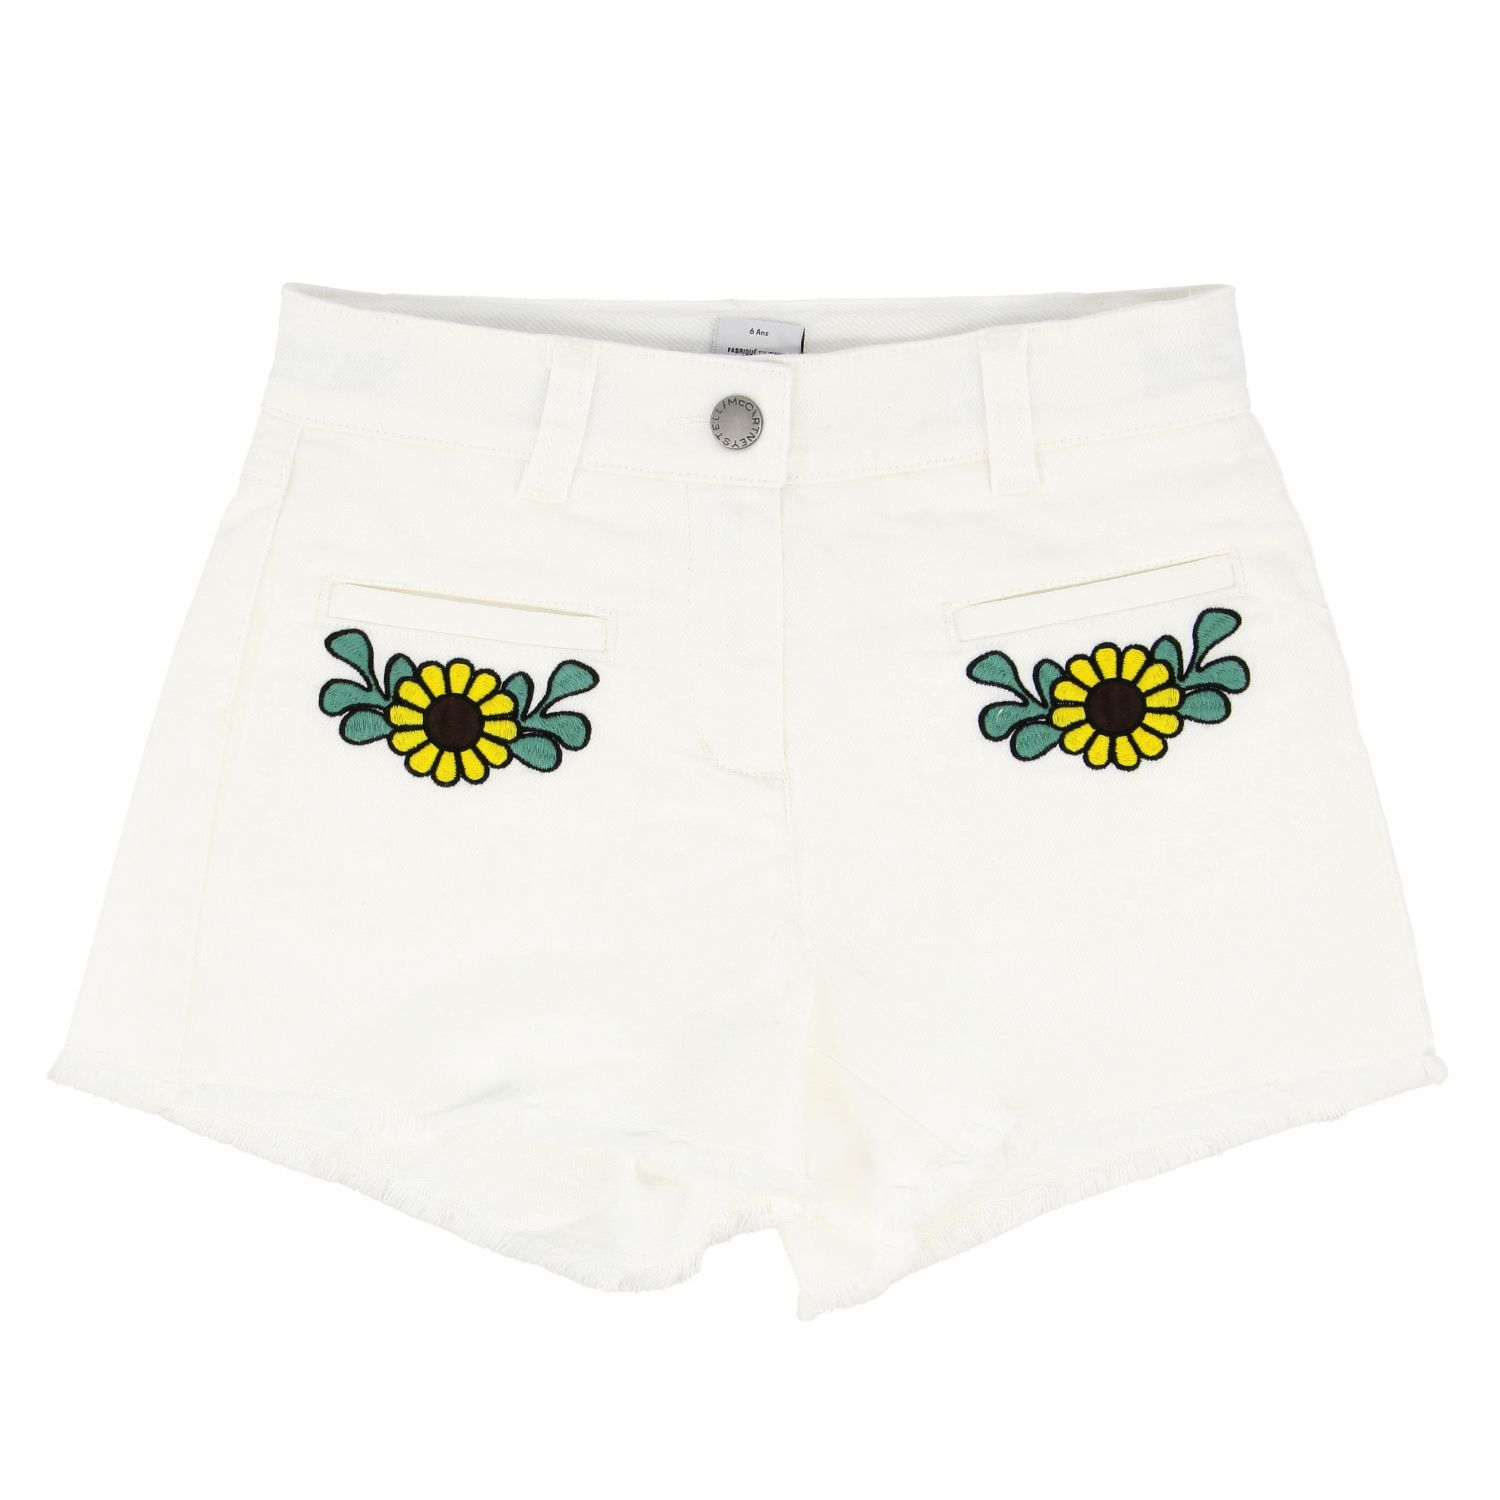 Stella McCartney shorts with floral embroidery white 1